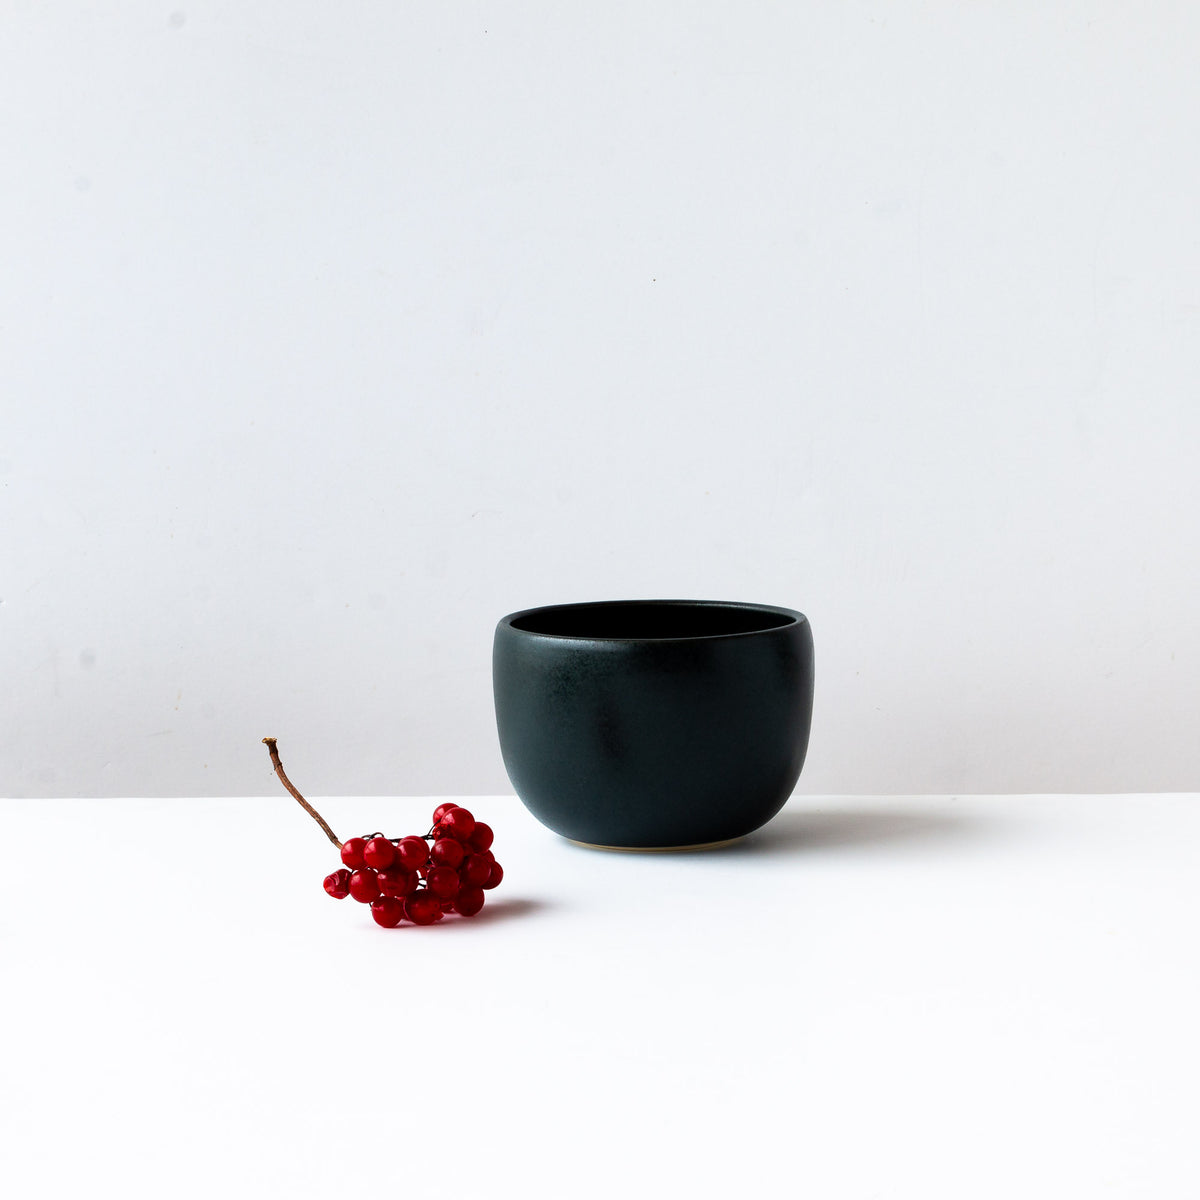 Black Satin Glazed Porcelain Soup Bowl - Sold by Chic & Basta